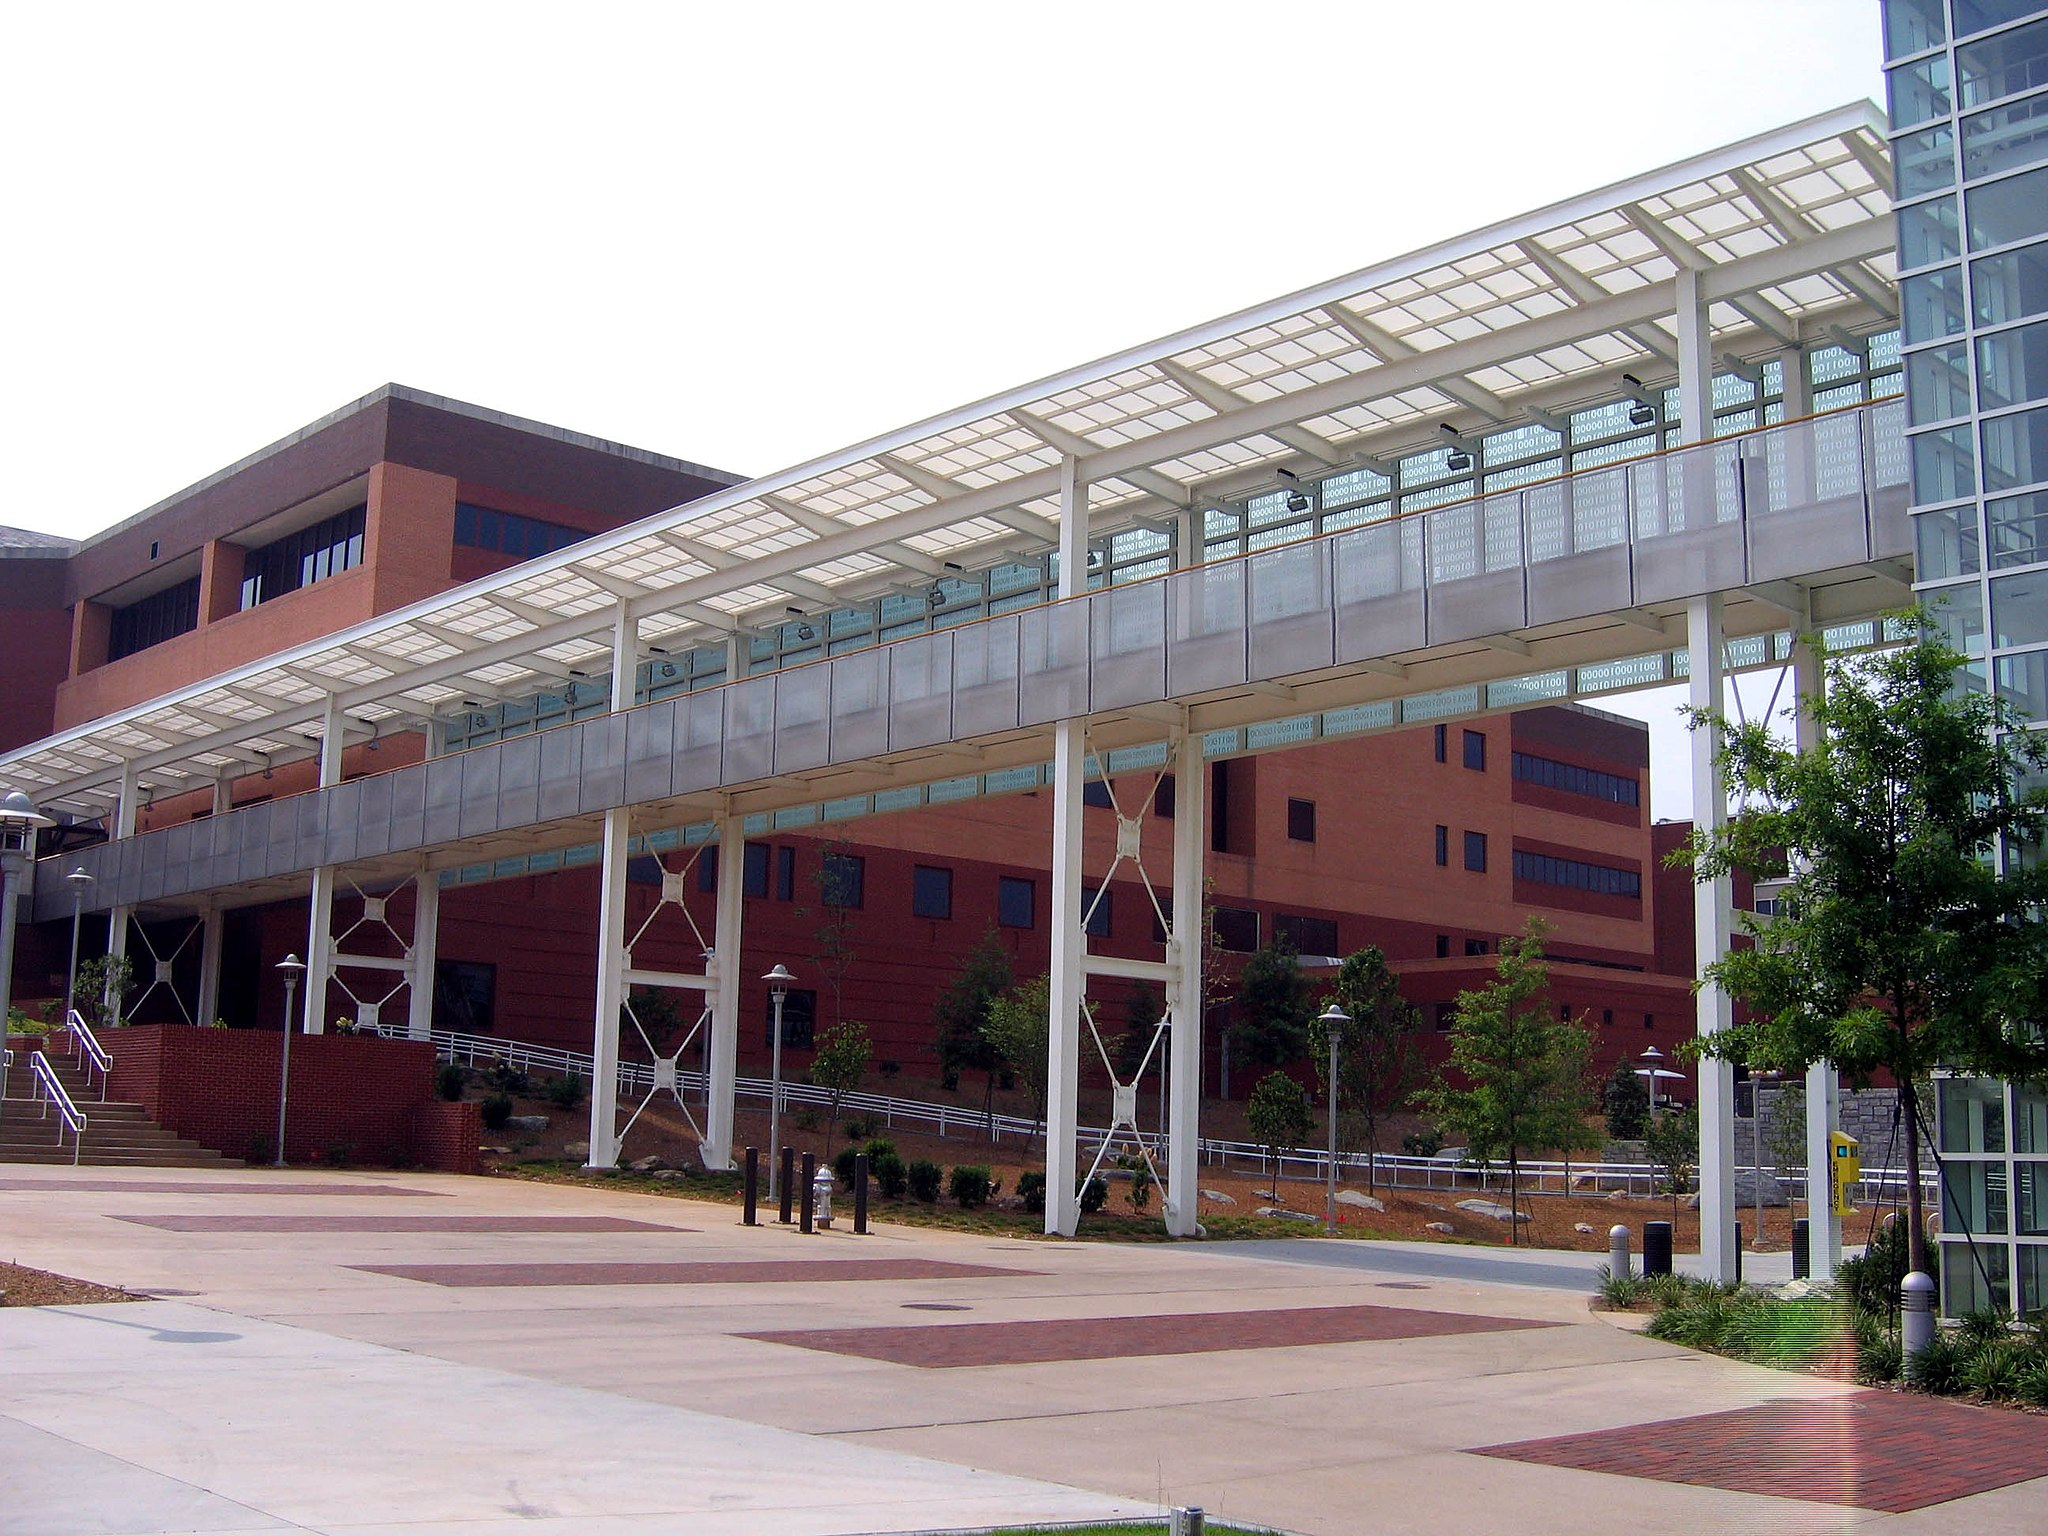 A pedestrian bridge from the College of Computing Building to the Klaus Advanced Computing Building at the Georgia Institute of Technology